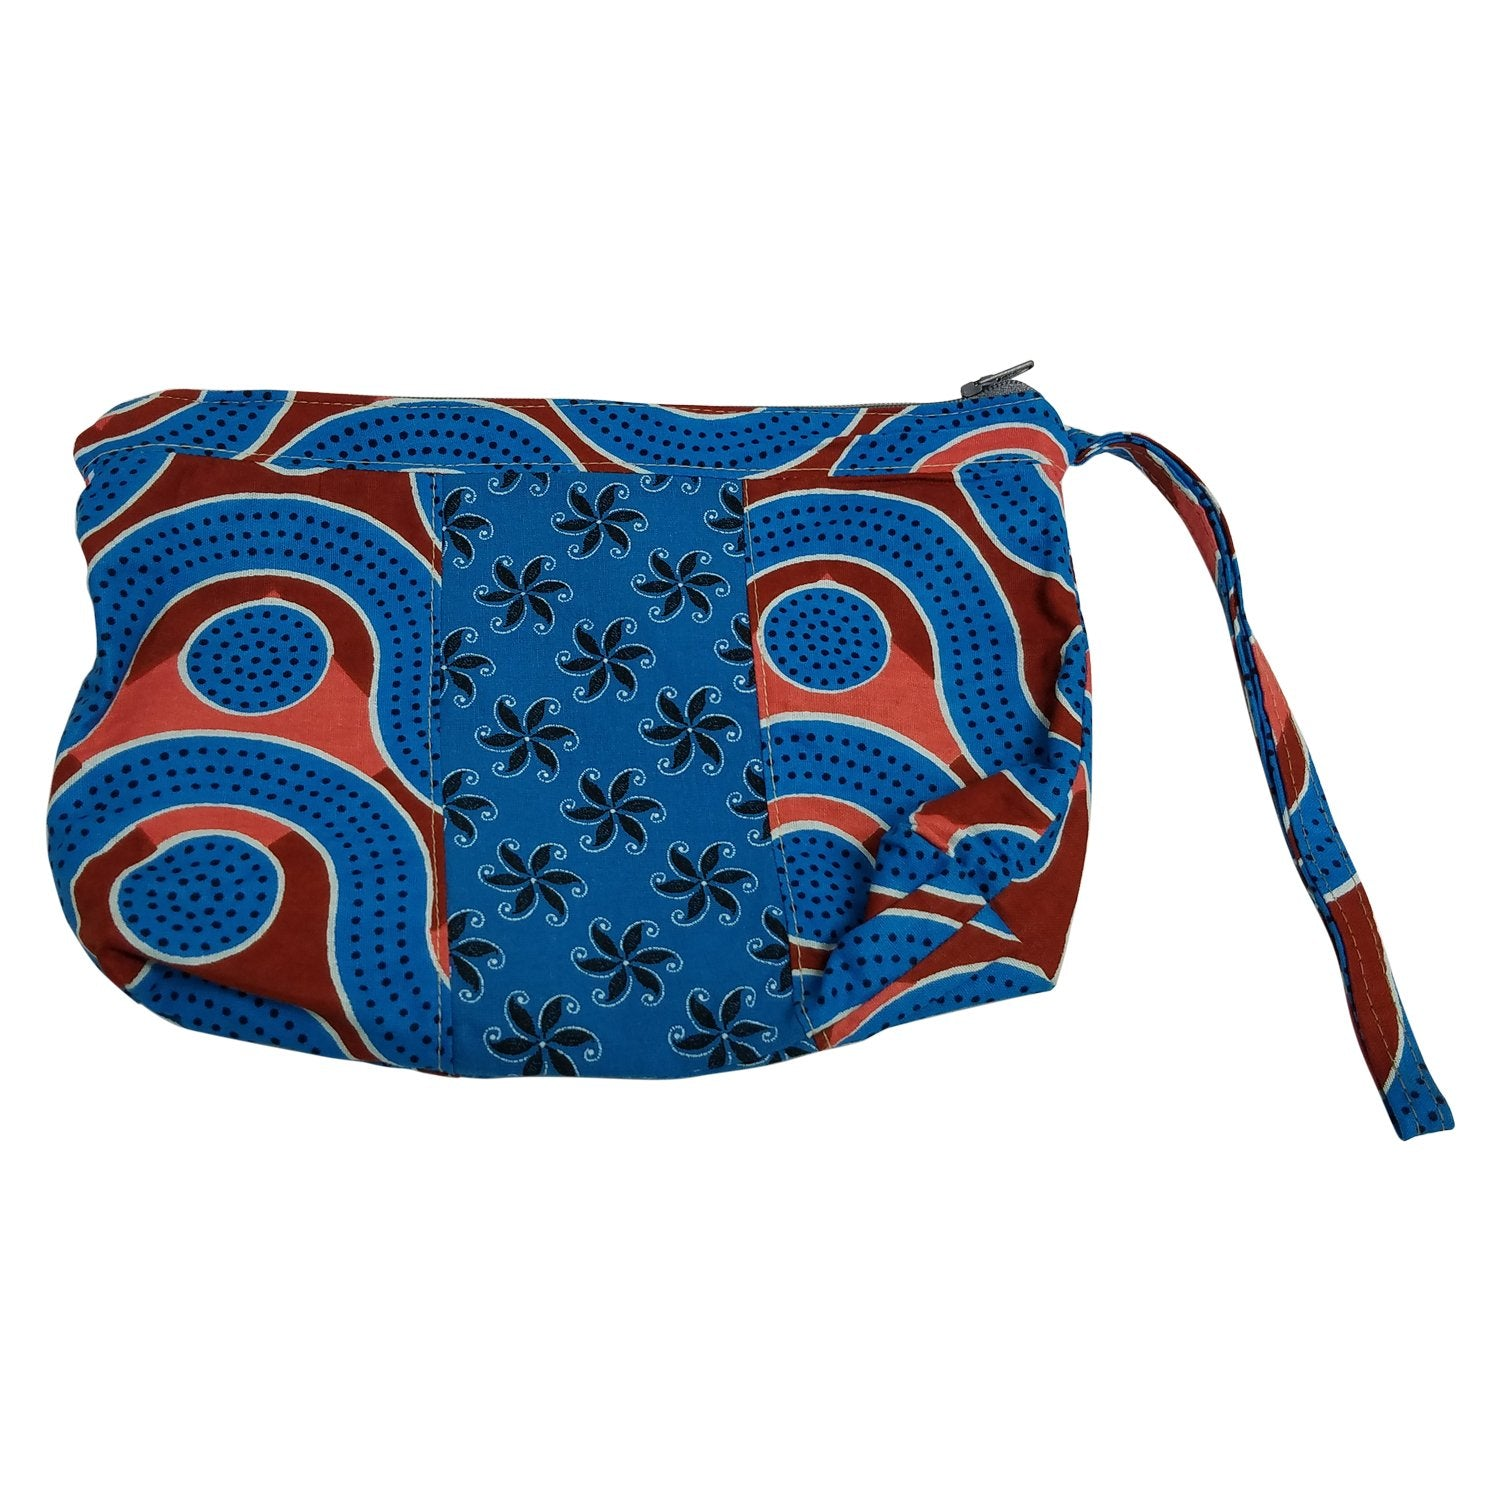 Big Bend: African Fabric Cosmetic/Make-Up Bag/Wristlet by Timbali Crafts